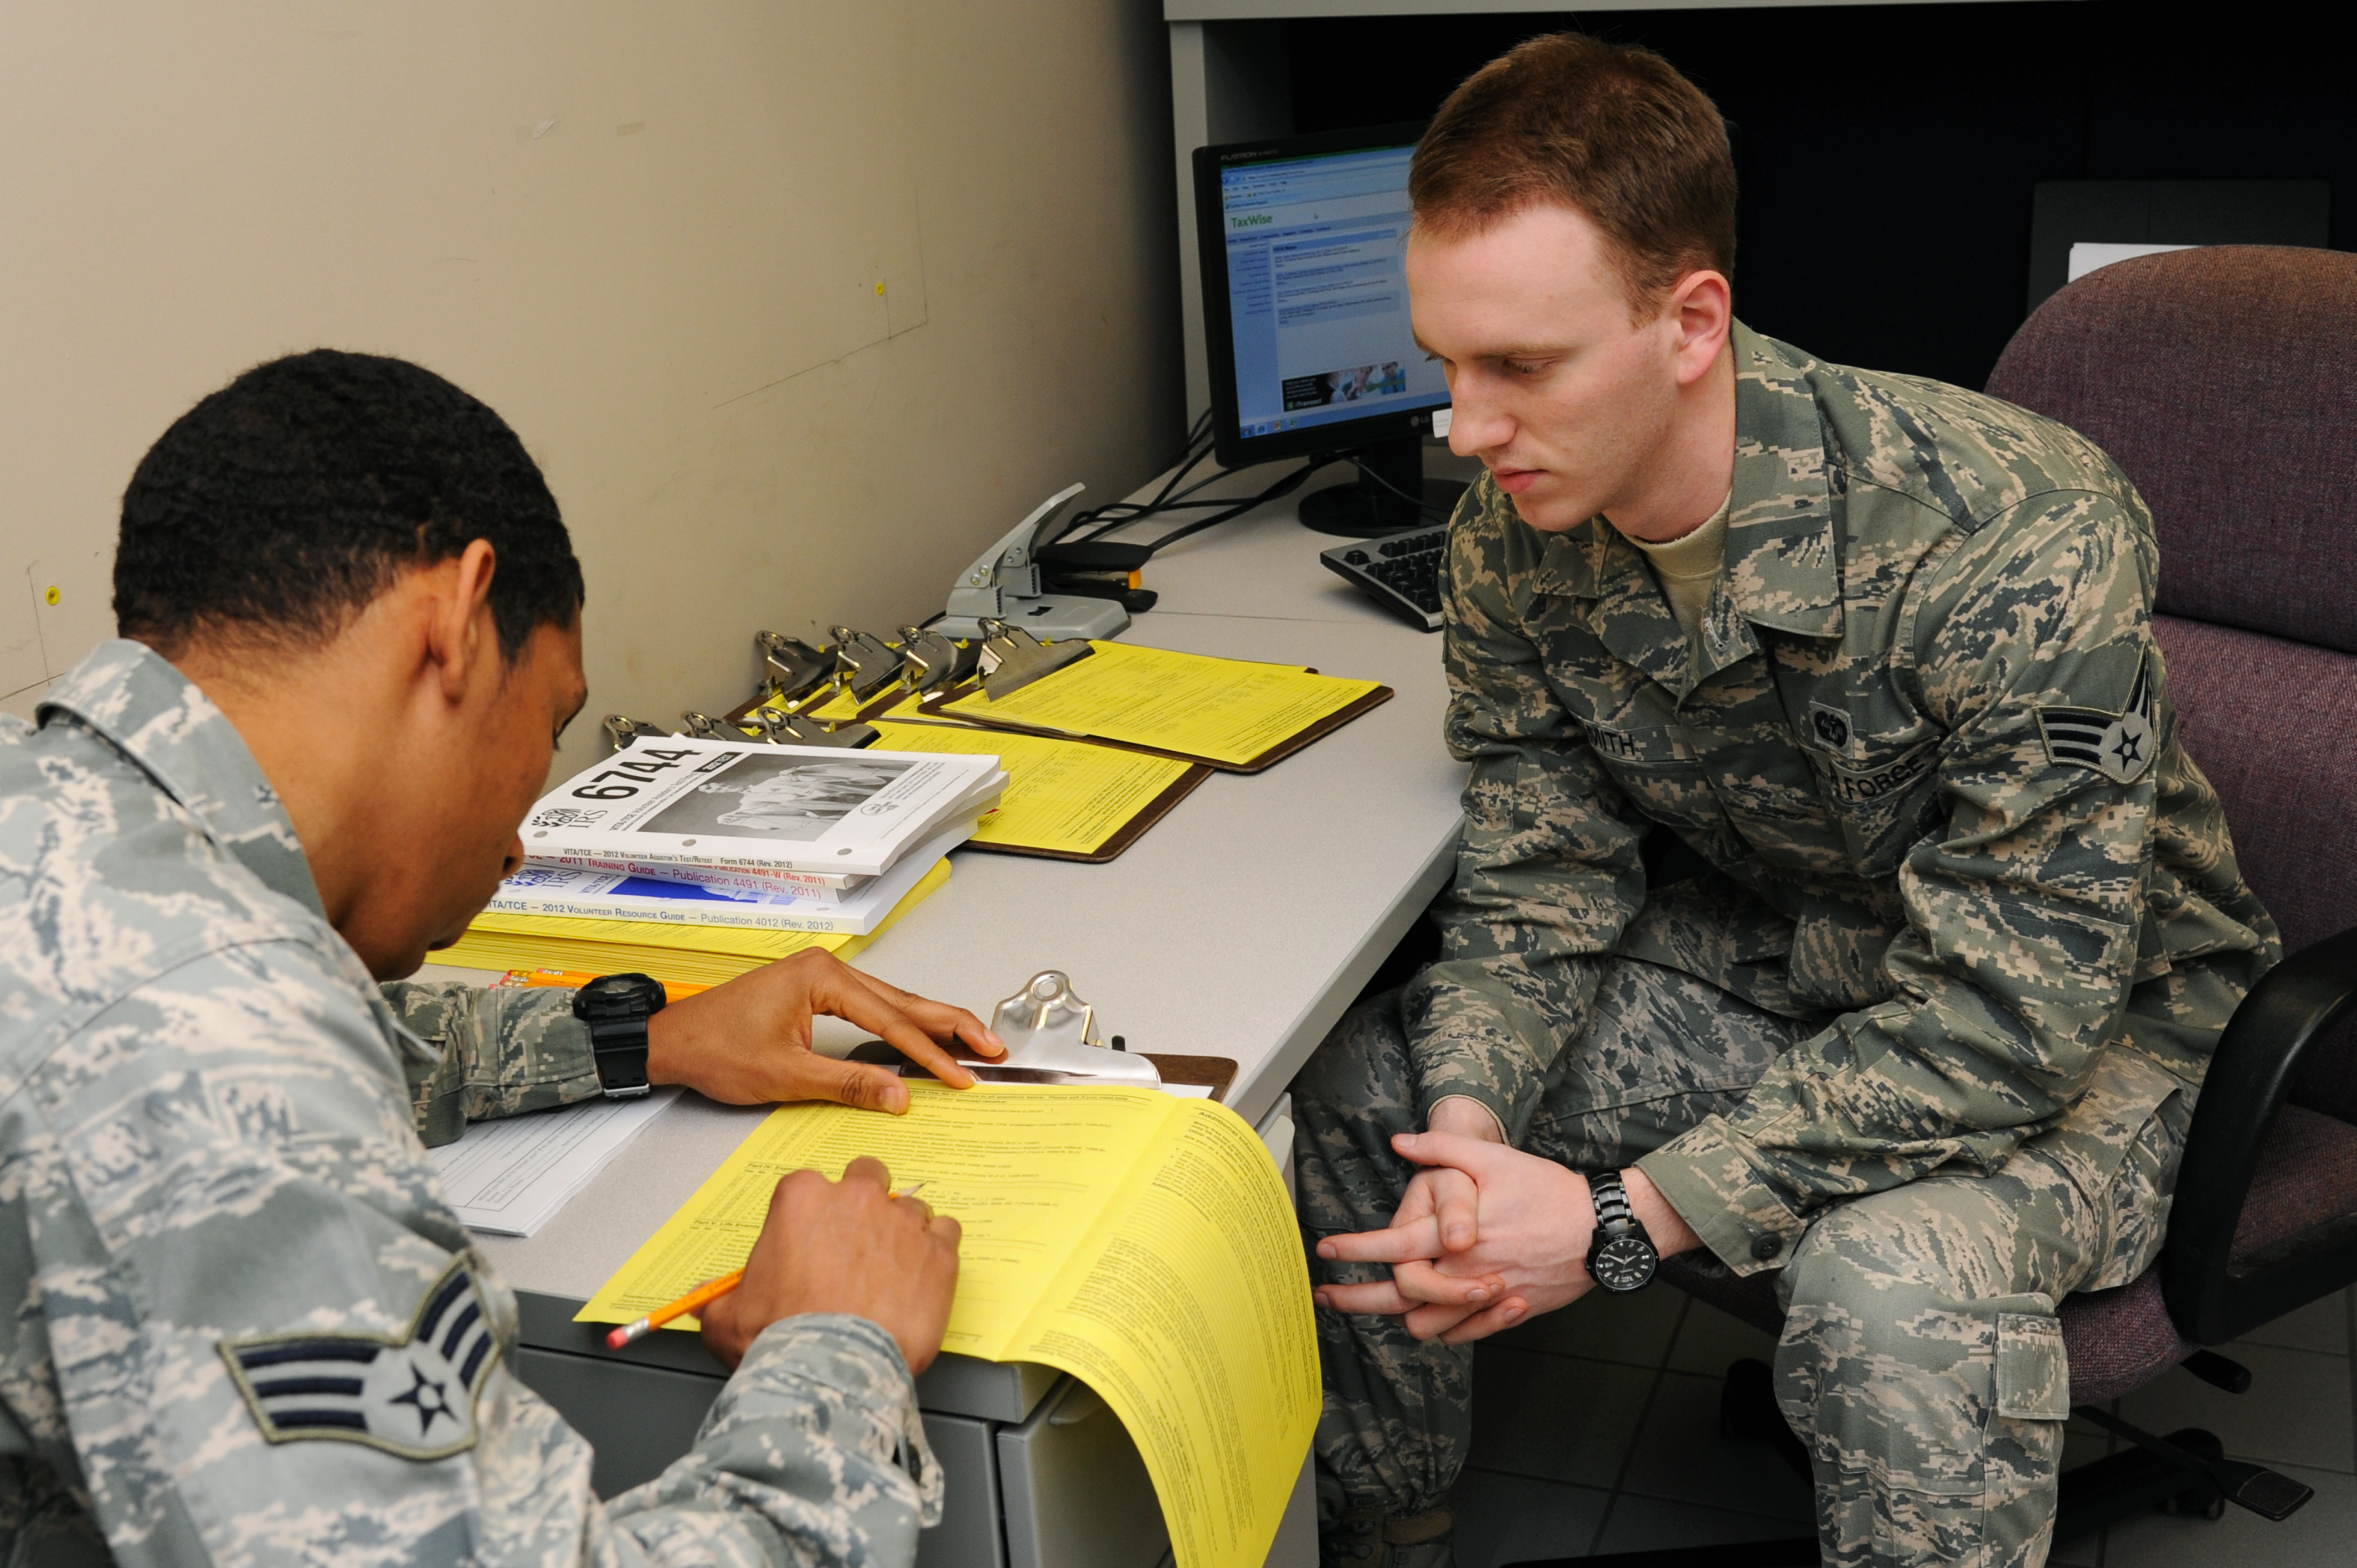 Jble Tax Centers Help Military Members, Families Save Money In Tax Filing  Costs